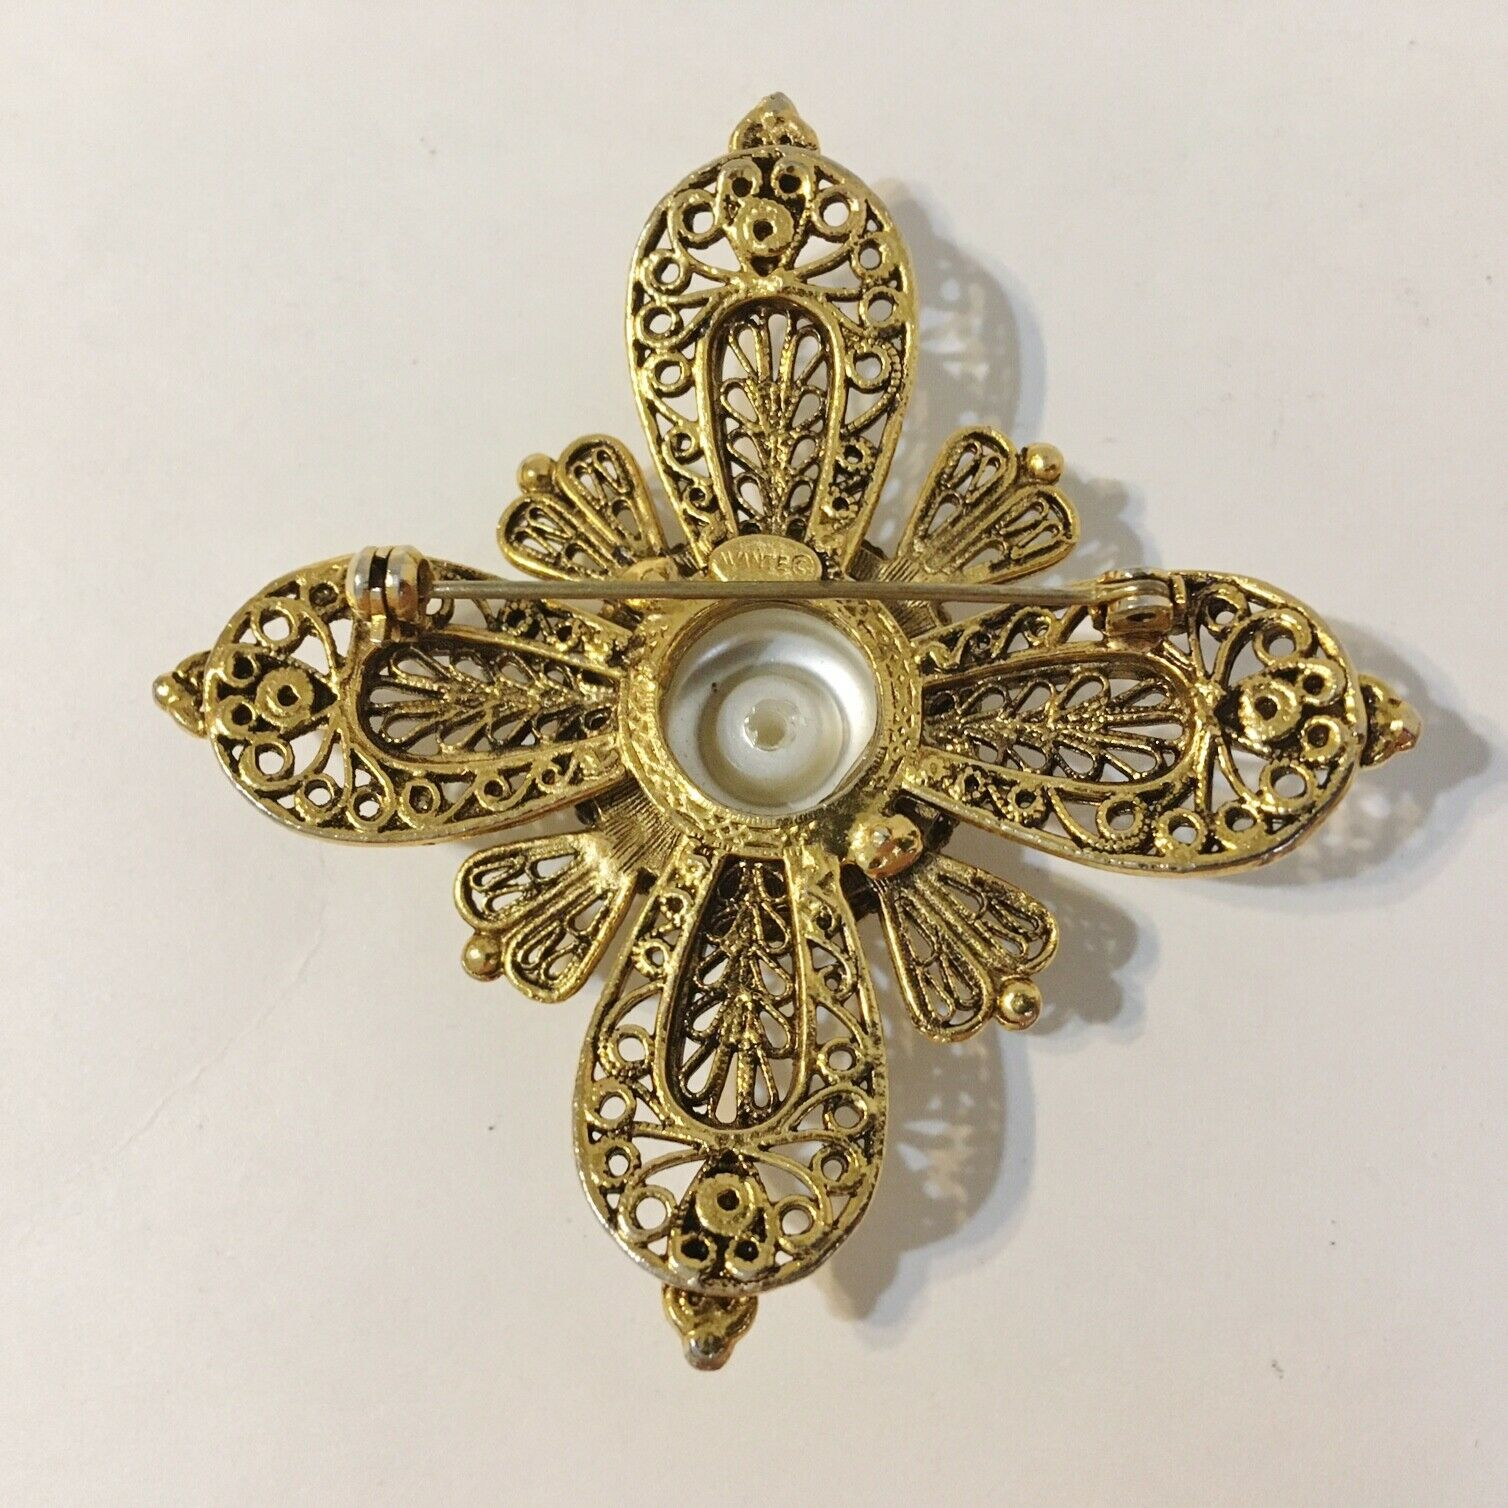 Avante Pin Brooch Vintage Faux Pearl Layered Orna… - image 6